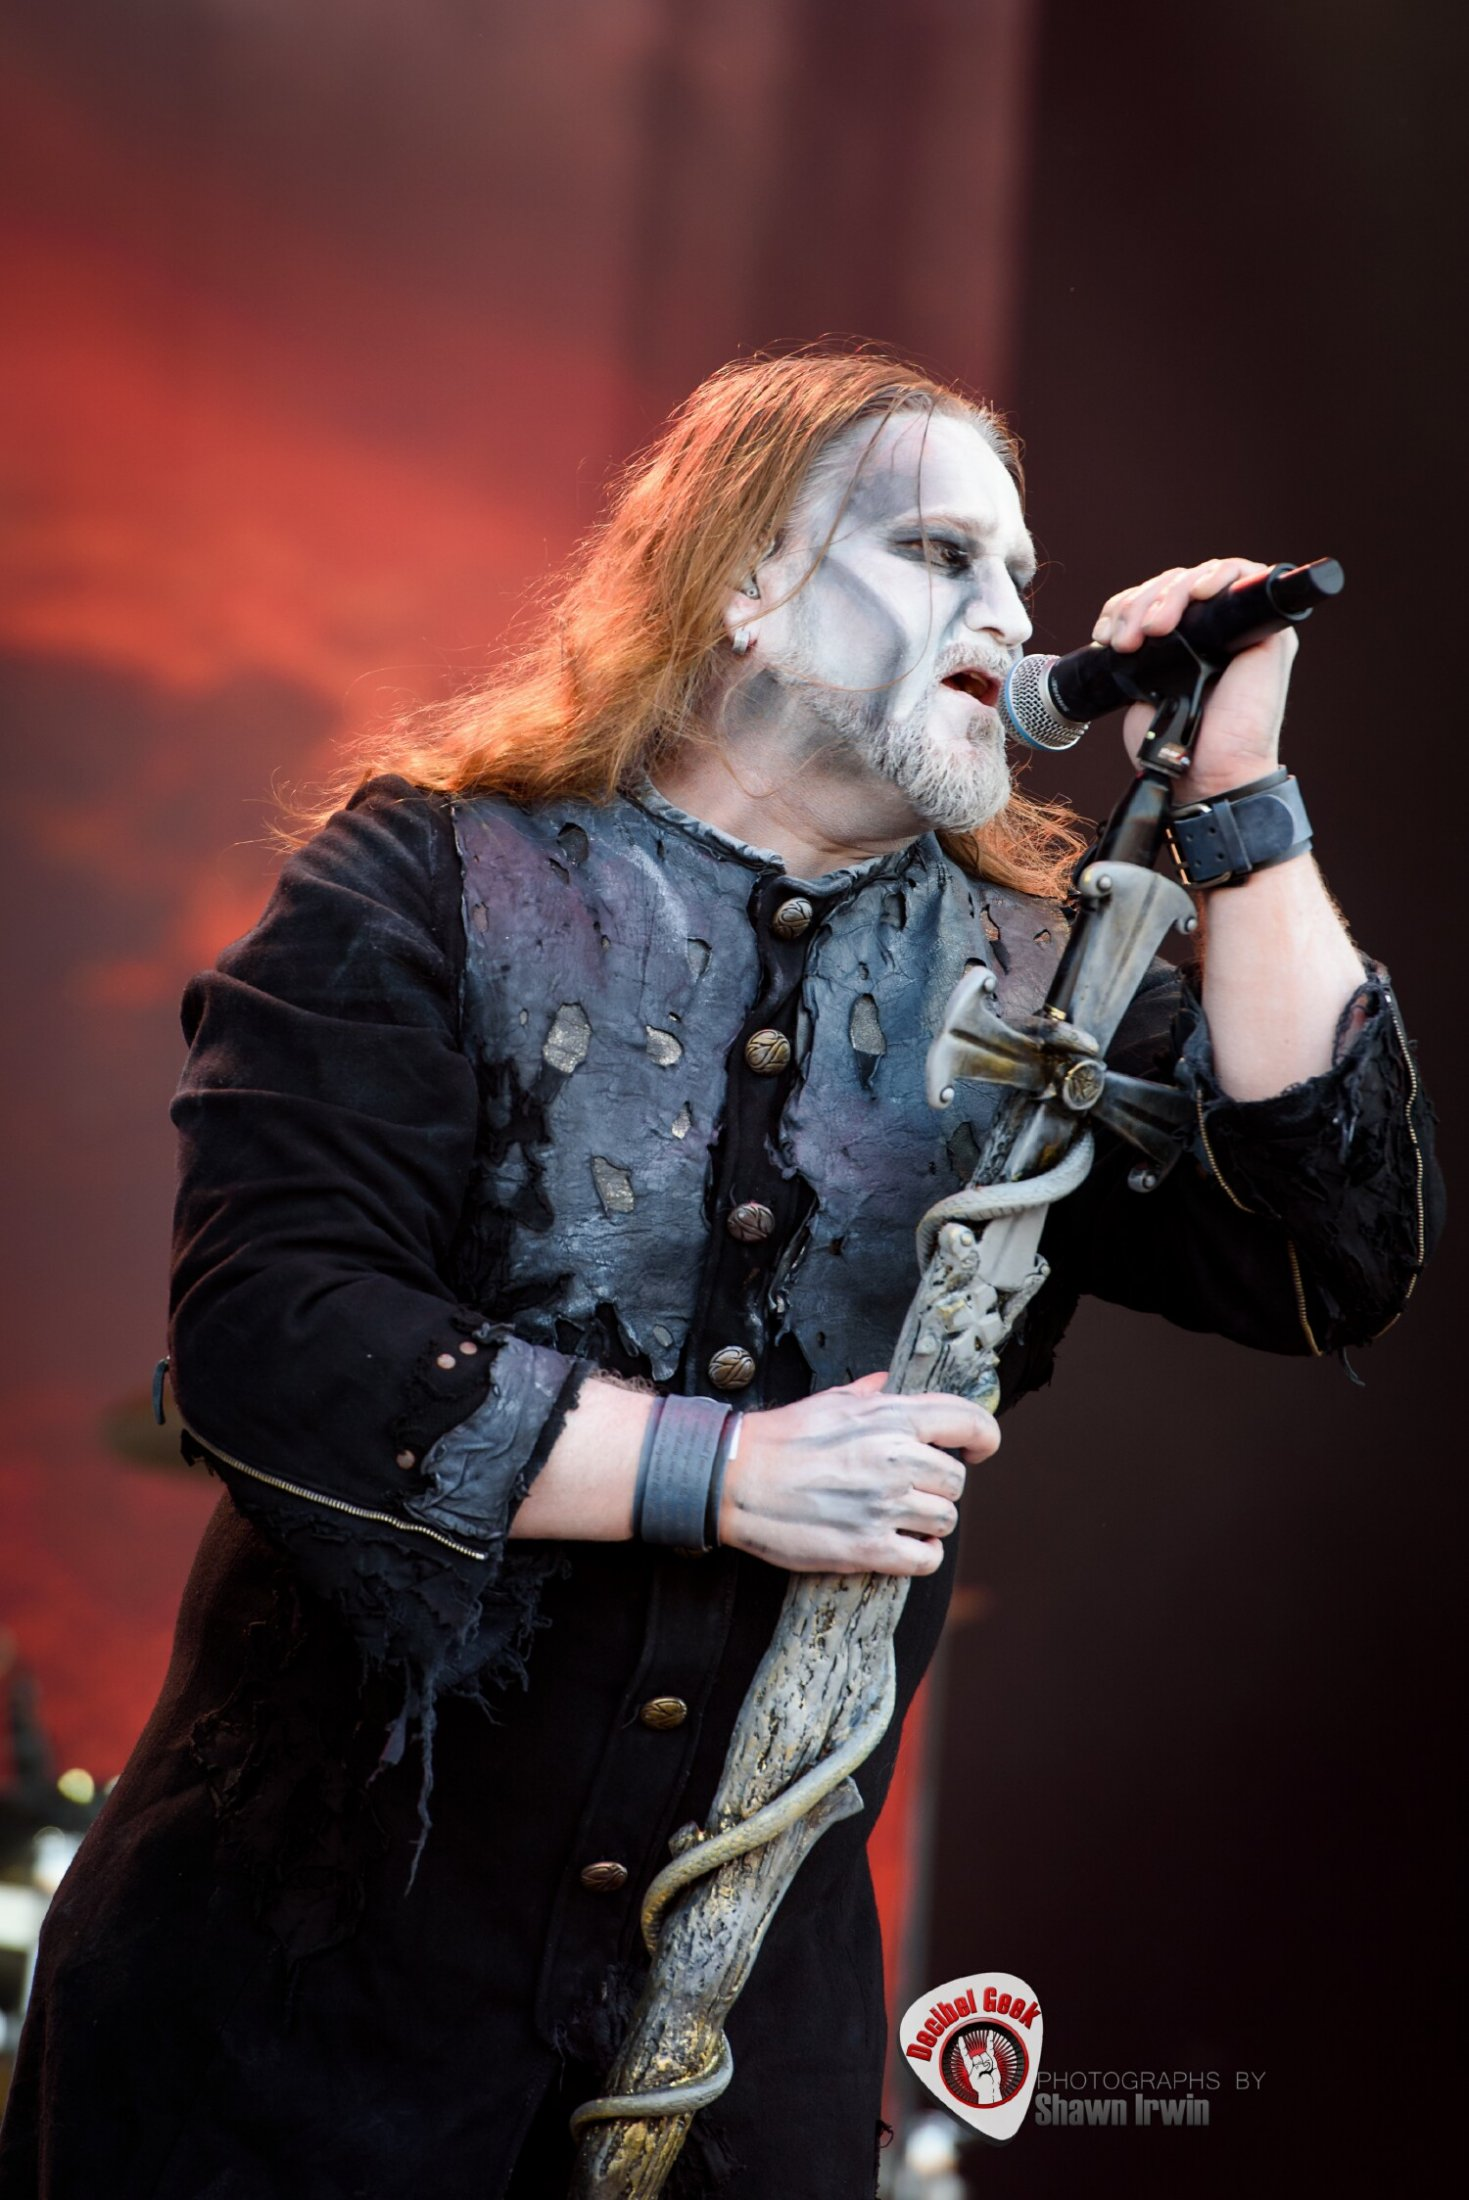 Powerwolf #1-Sweden Rock 2019-Shawn Irwin